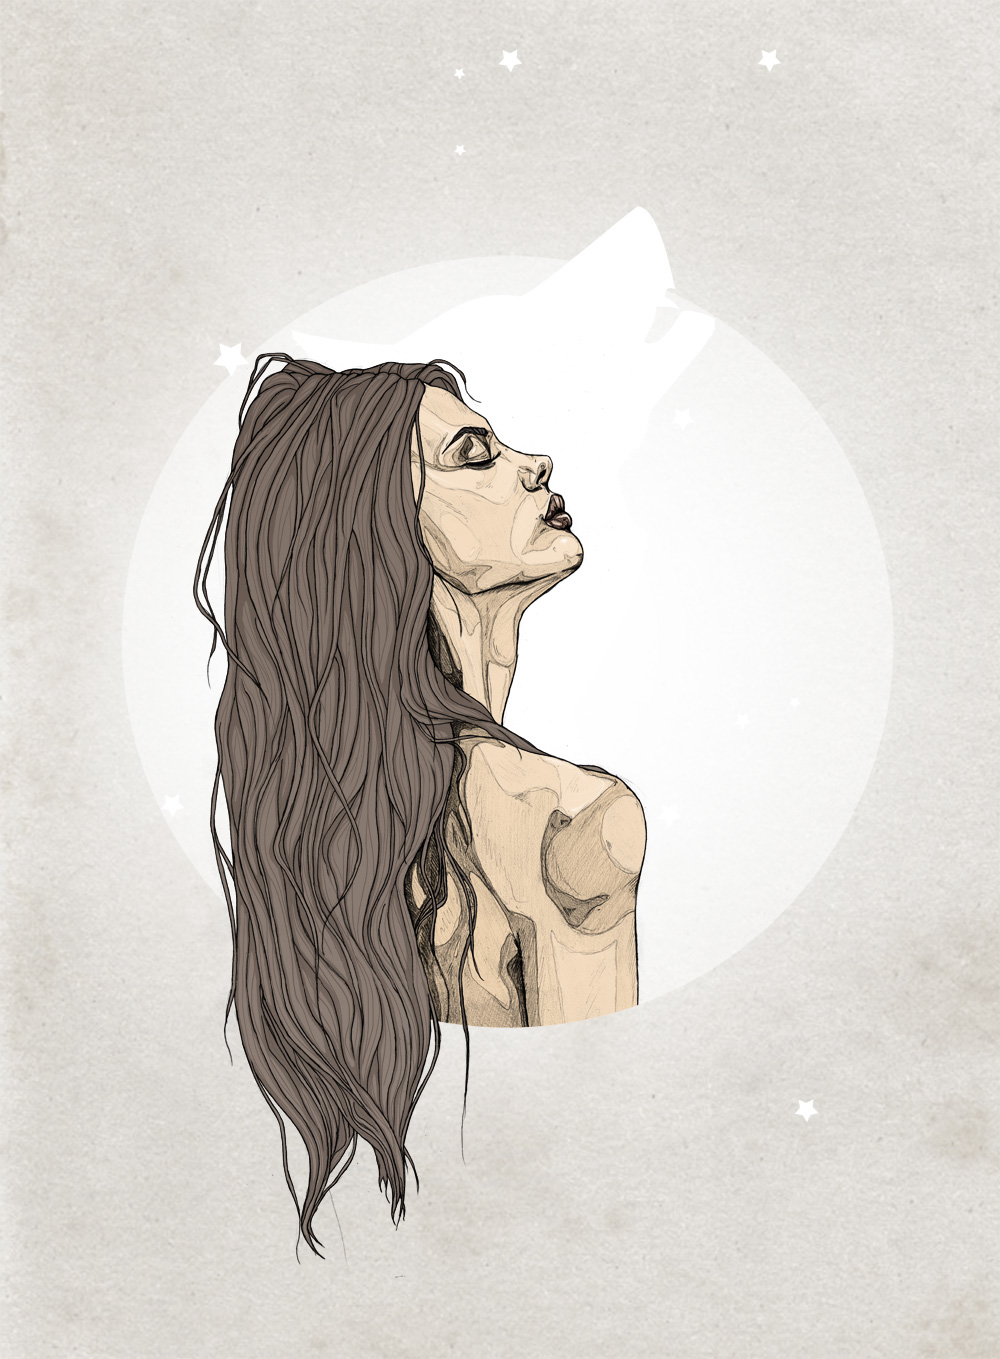 Girl wolf tumblr - photo#17